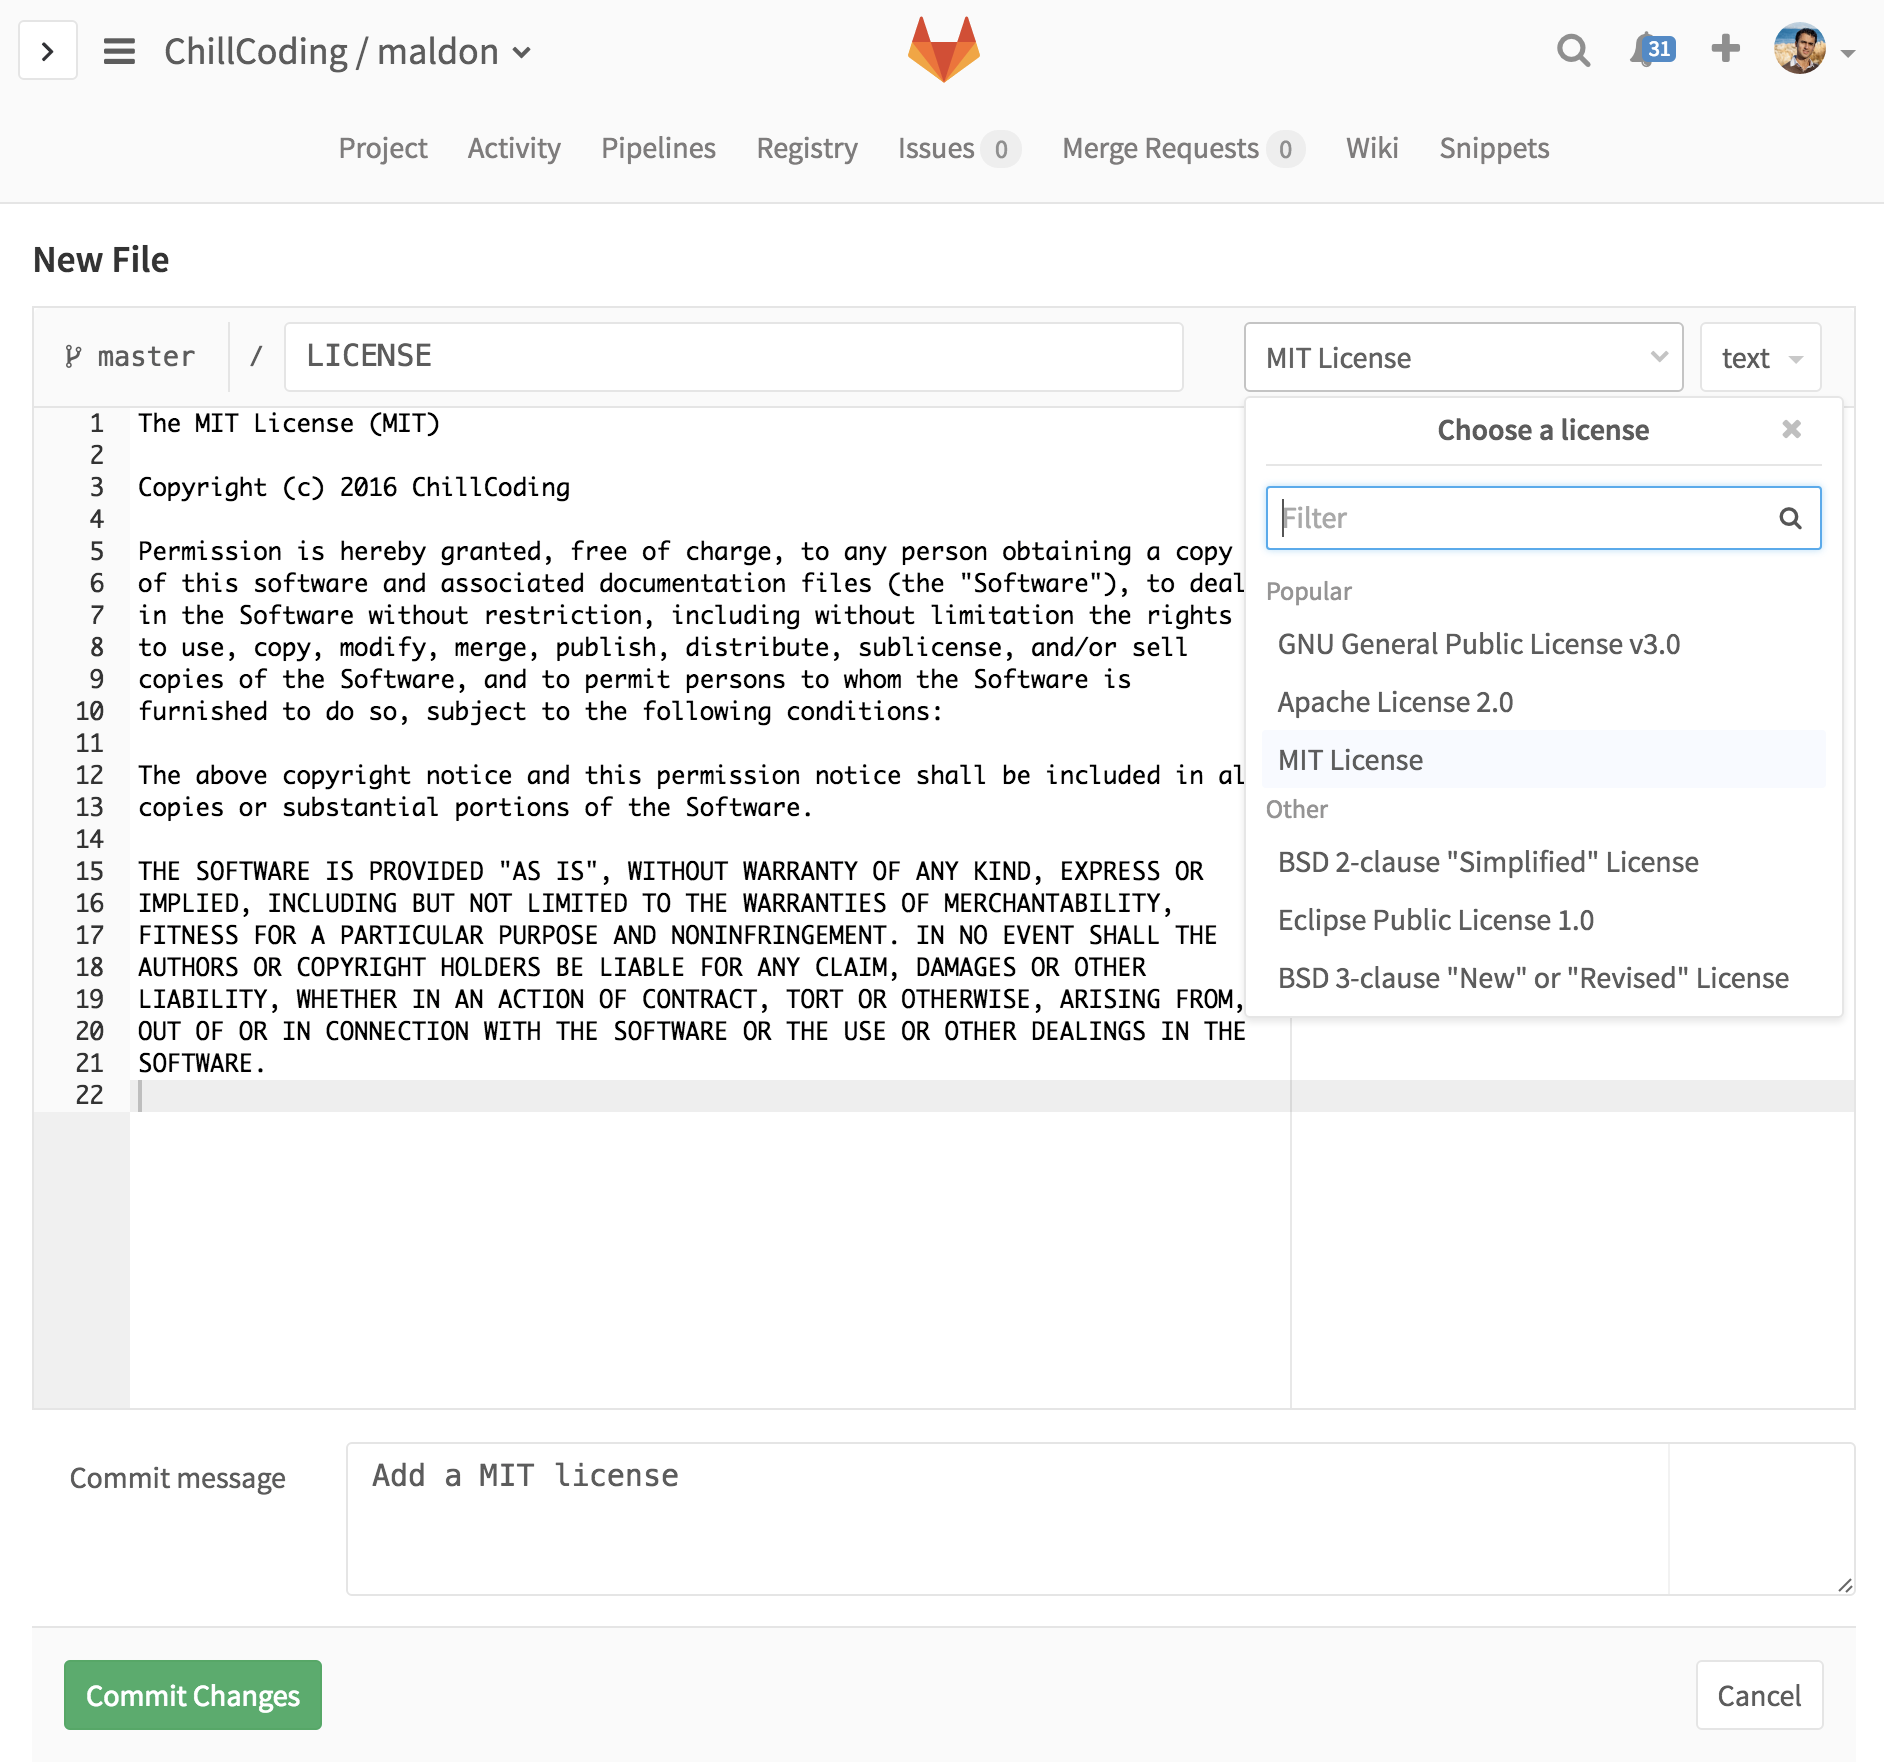 Add a MIT license on GitLab